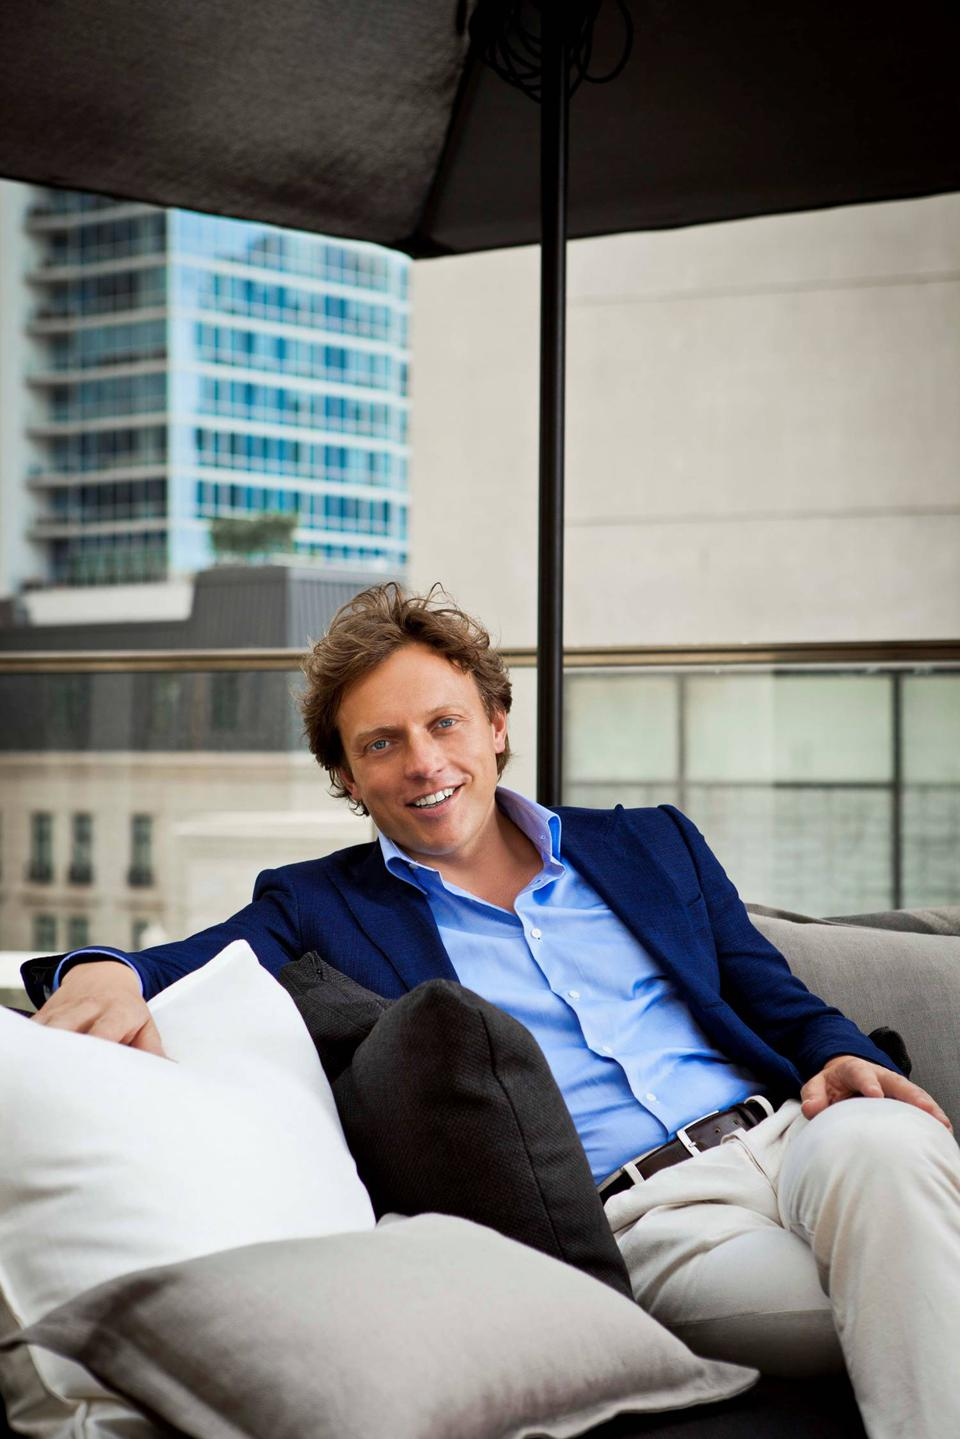 Image of Fokke de Jong, CEO and founder SuitSupply